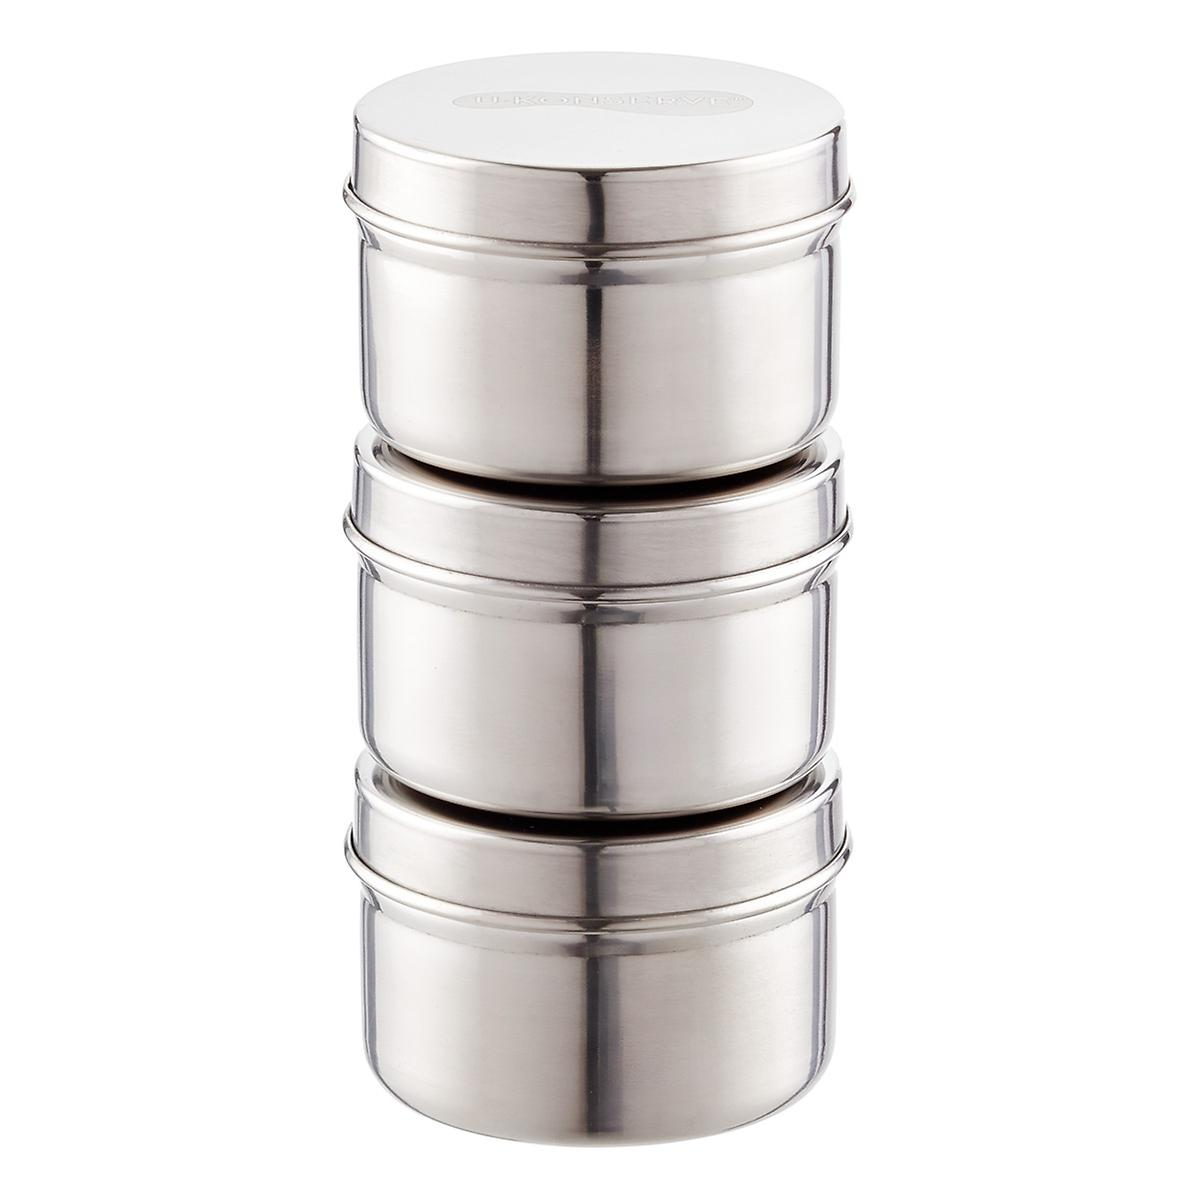 2.5 oz. Stainless Steel Containers